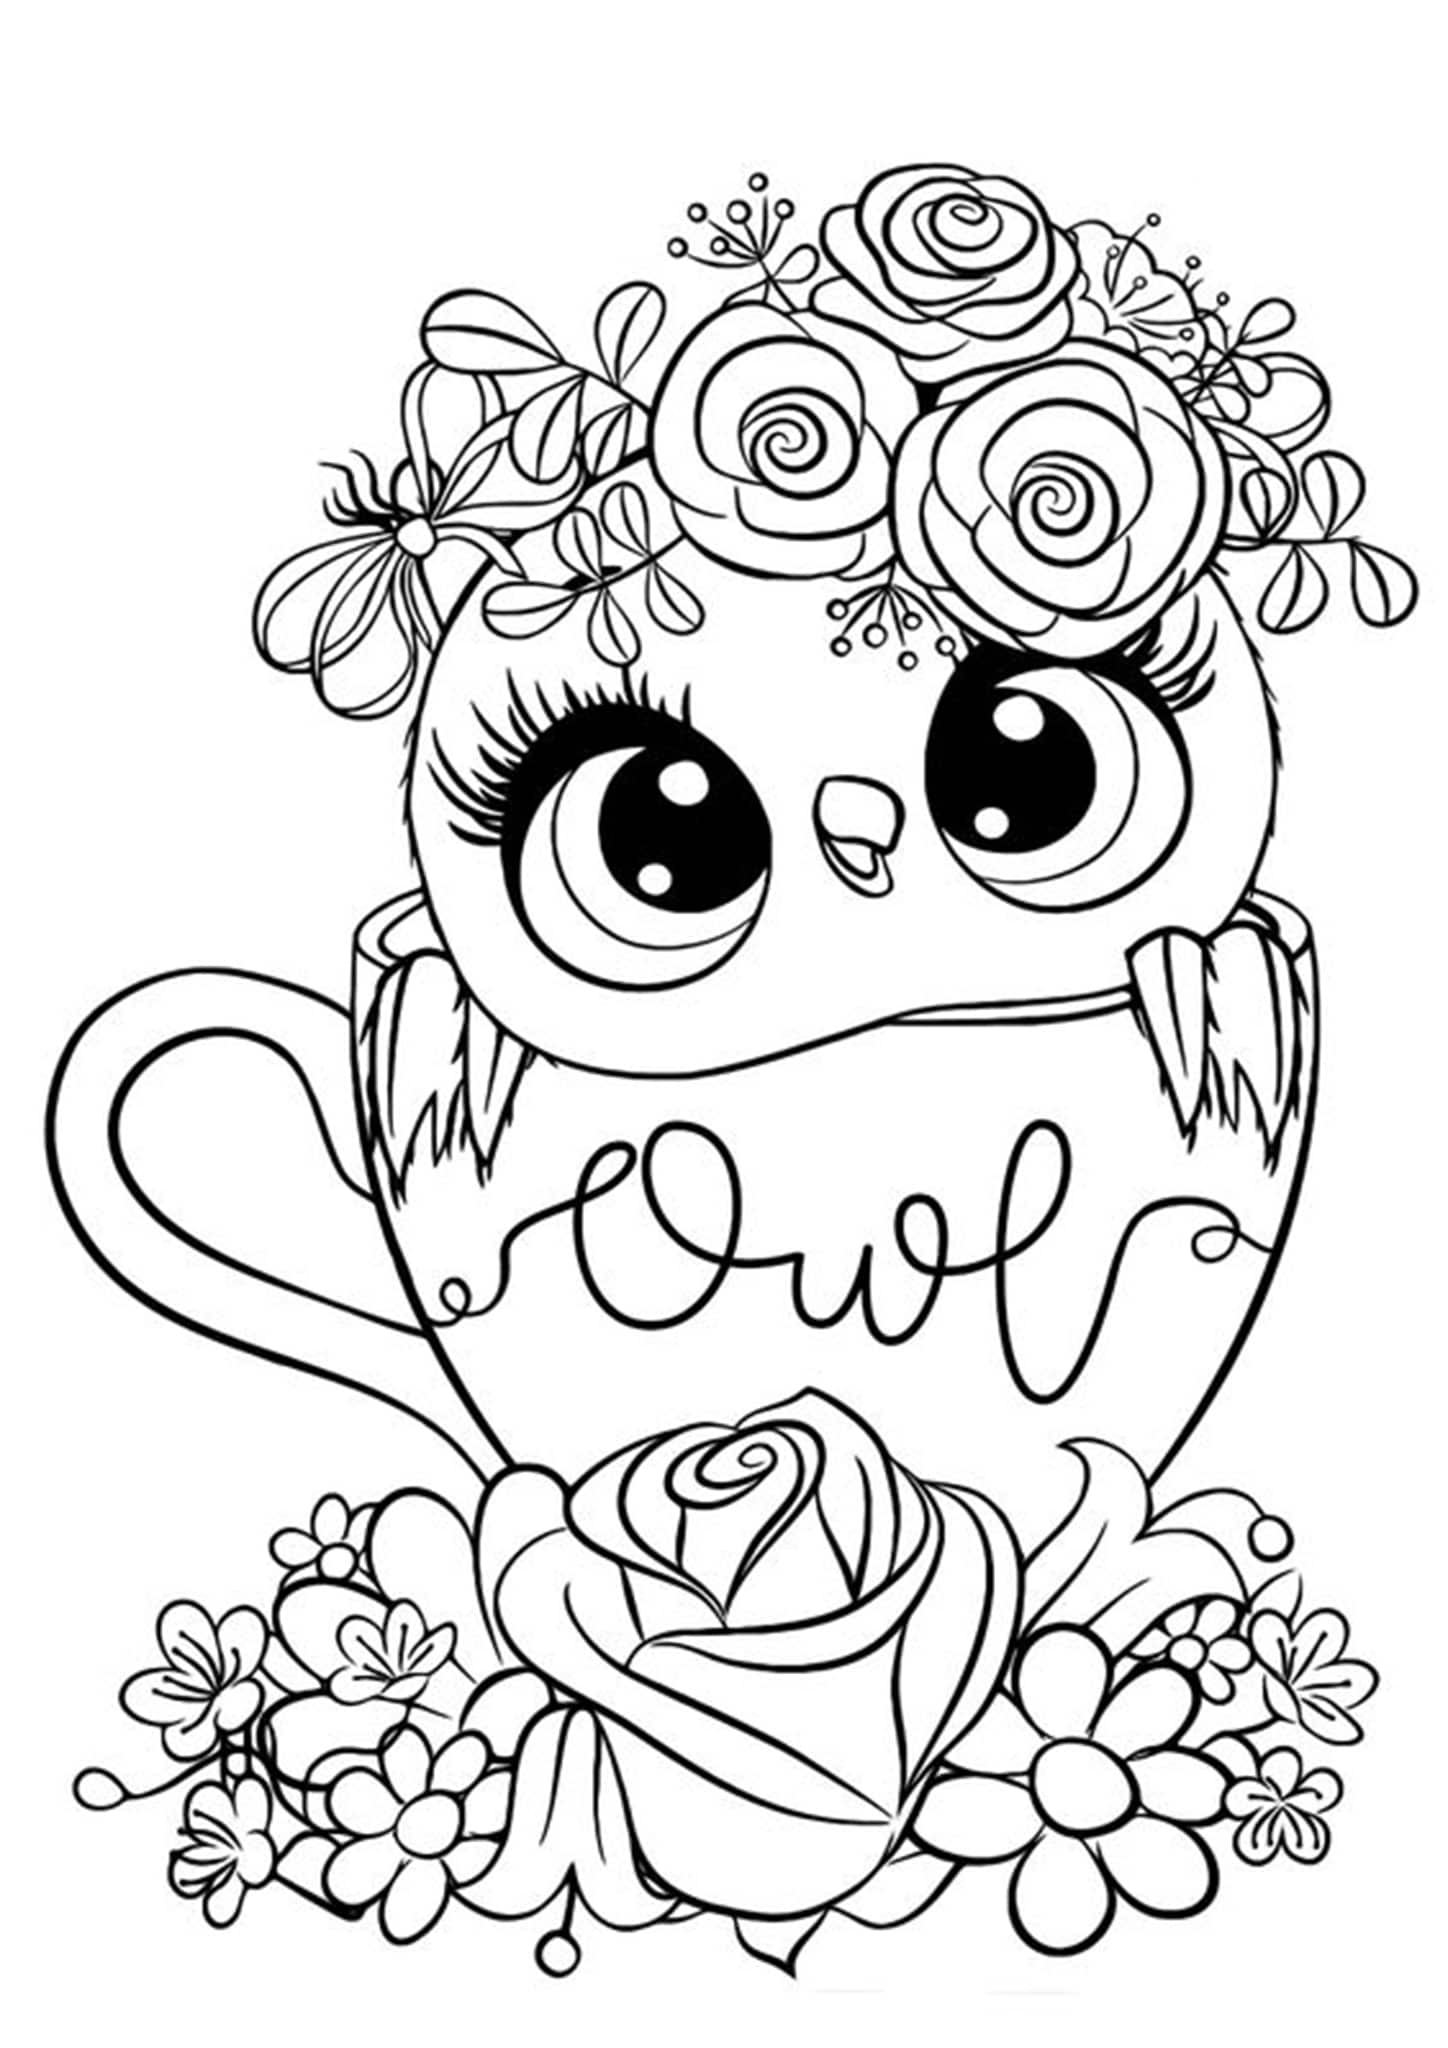 free easy coloring pages coloring pages cute and easy coloring pages free and coloring free easy pages